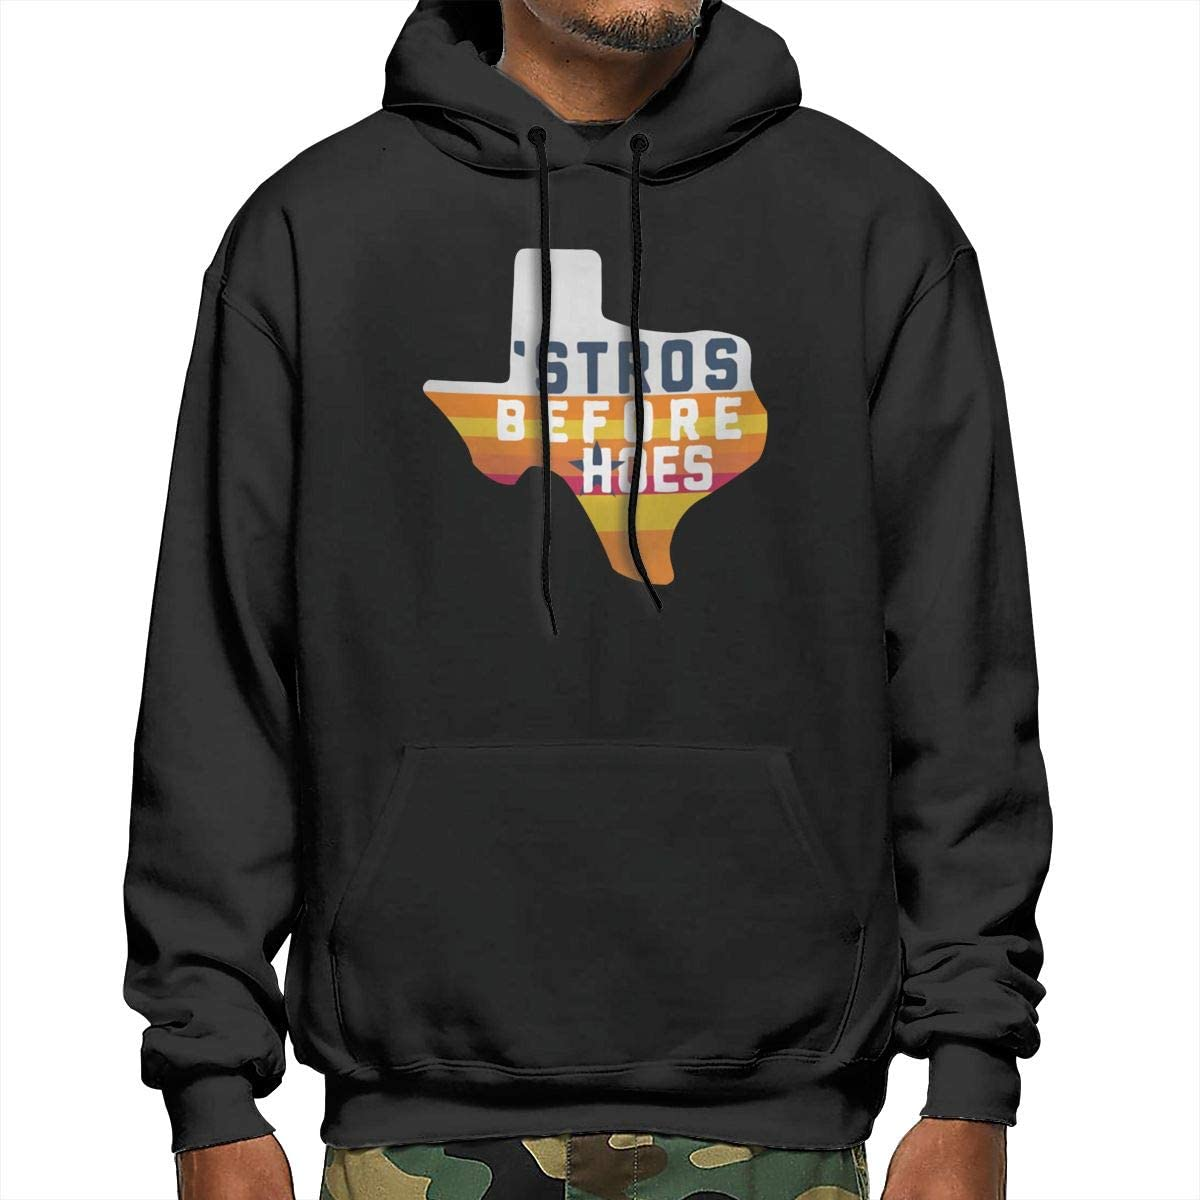 HOU-Ston AST-ROS Inspired St-ROS Before Hoes Mens Hooded Sweatshirt